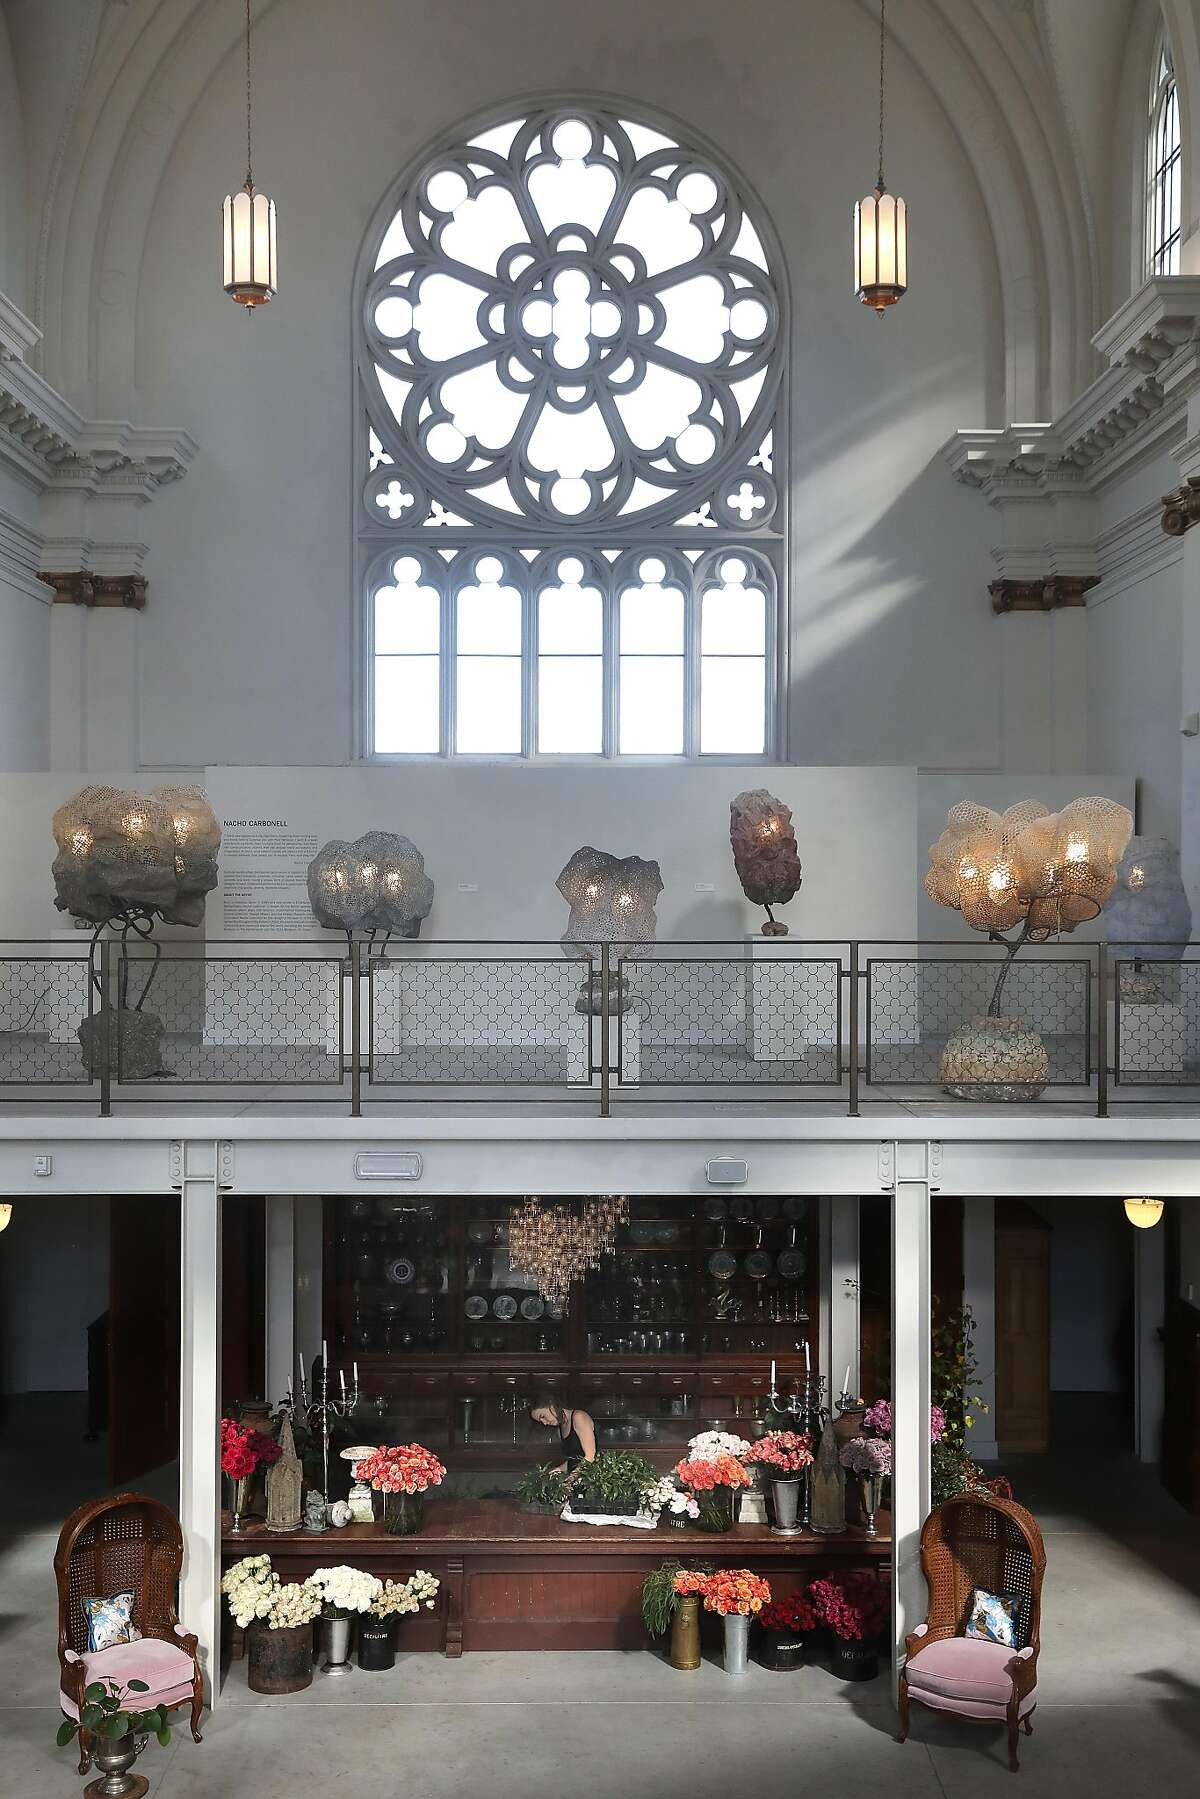 View of sculptures from artist Nacho Carbonell (middle) with floral design table seen below at Saint Joseph's Arts Society on Tuesday, Oct. 16, 2018, in San Francisco, Calif.